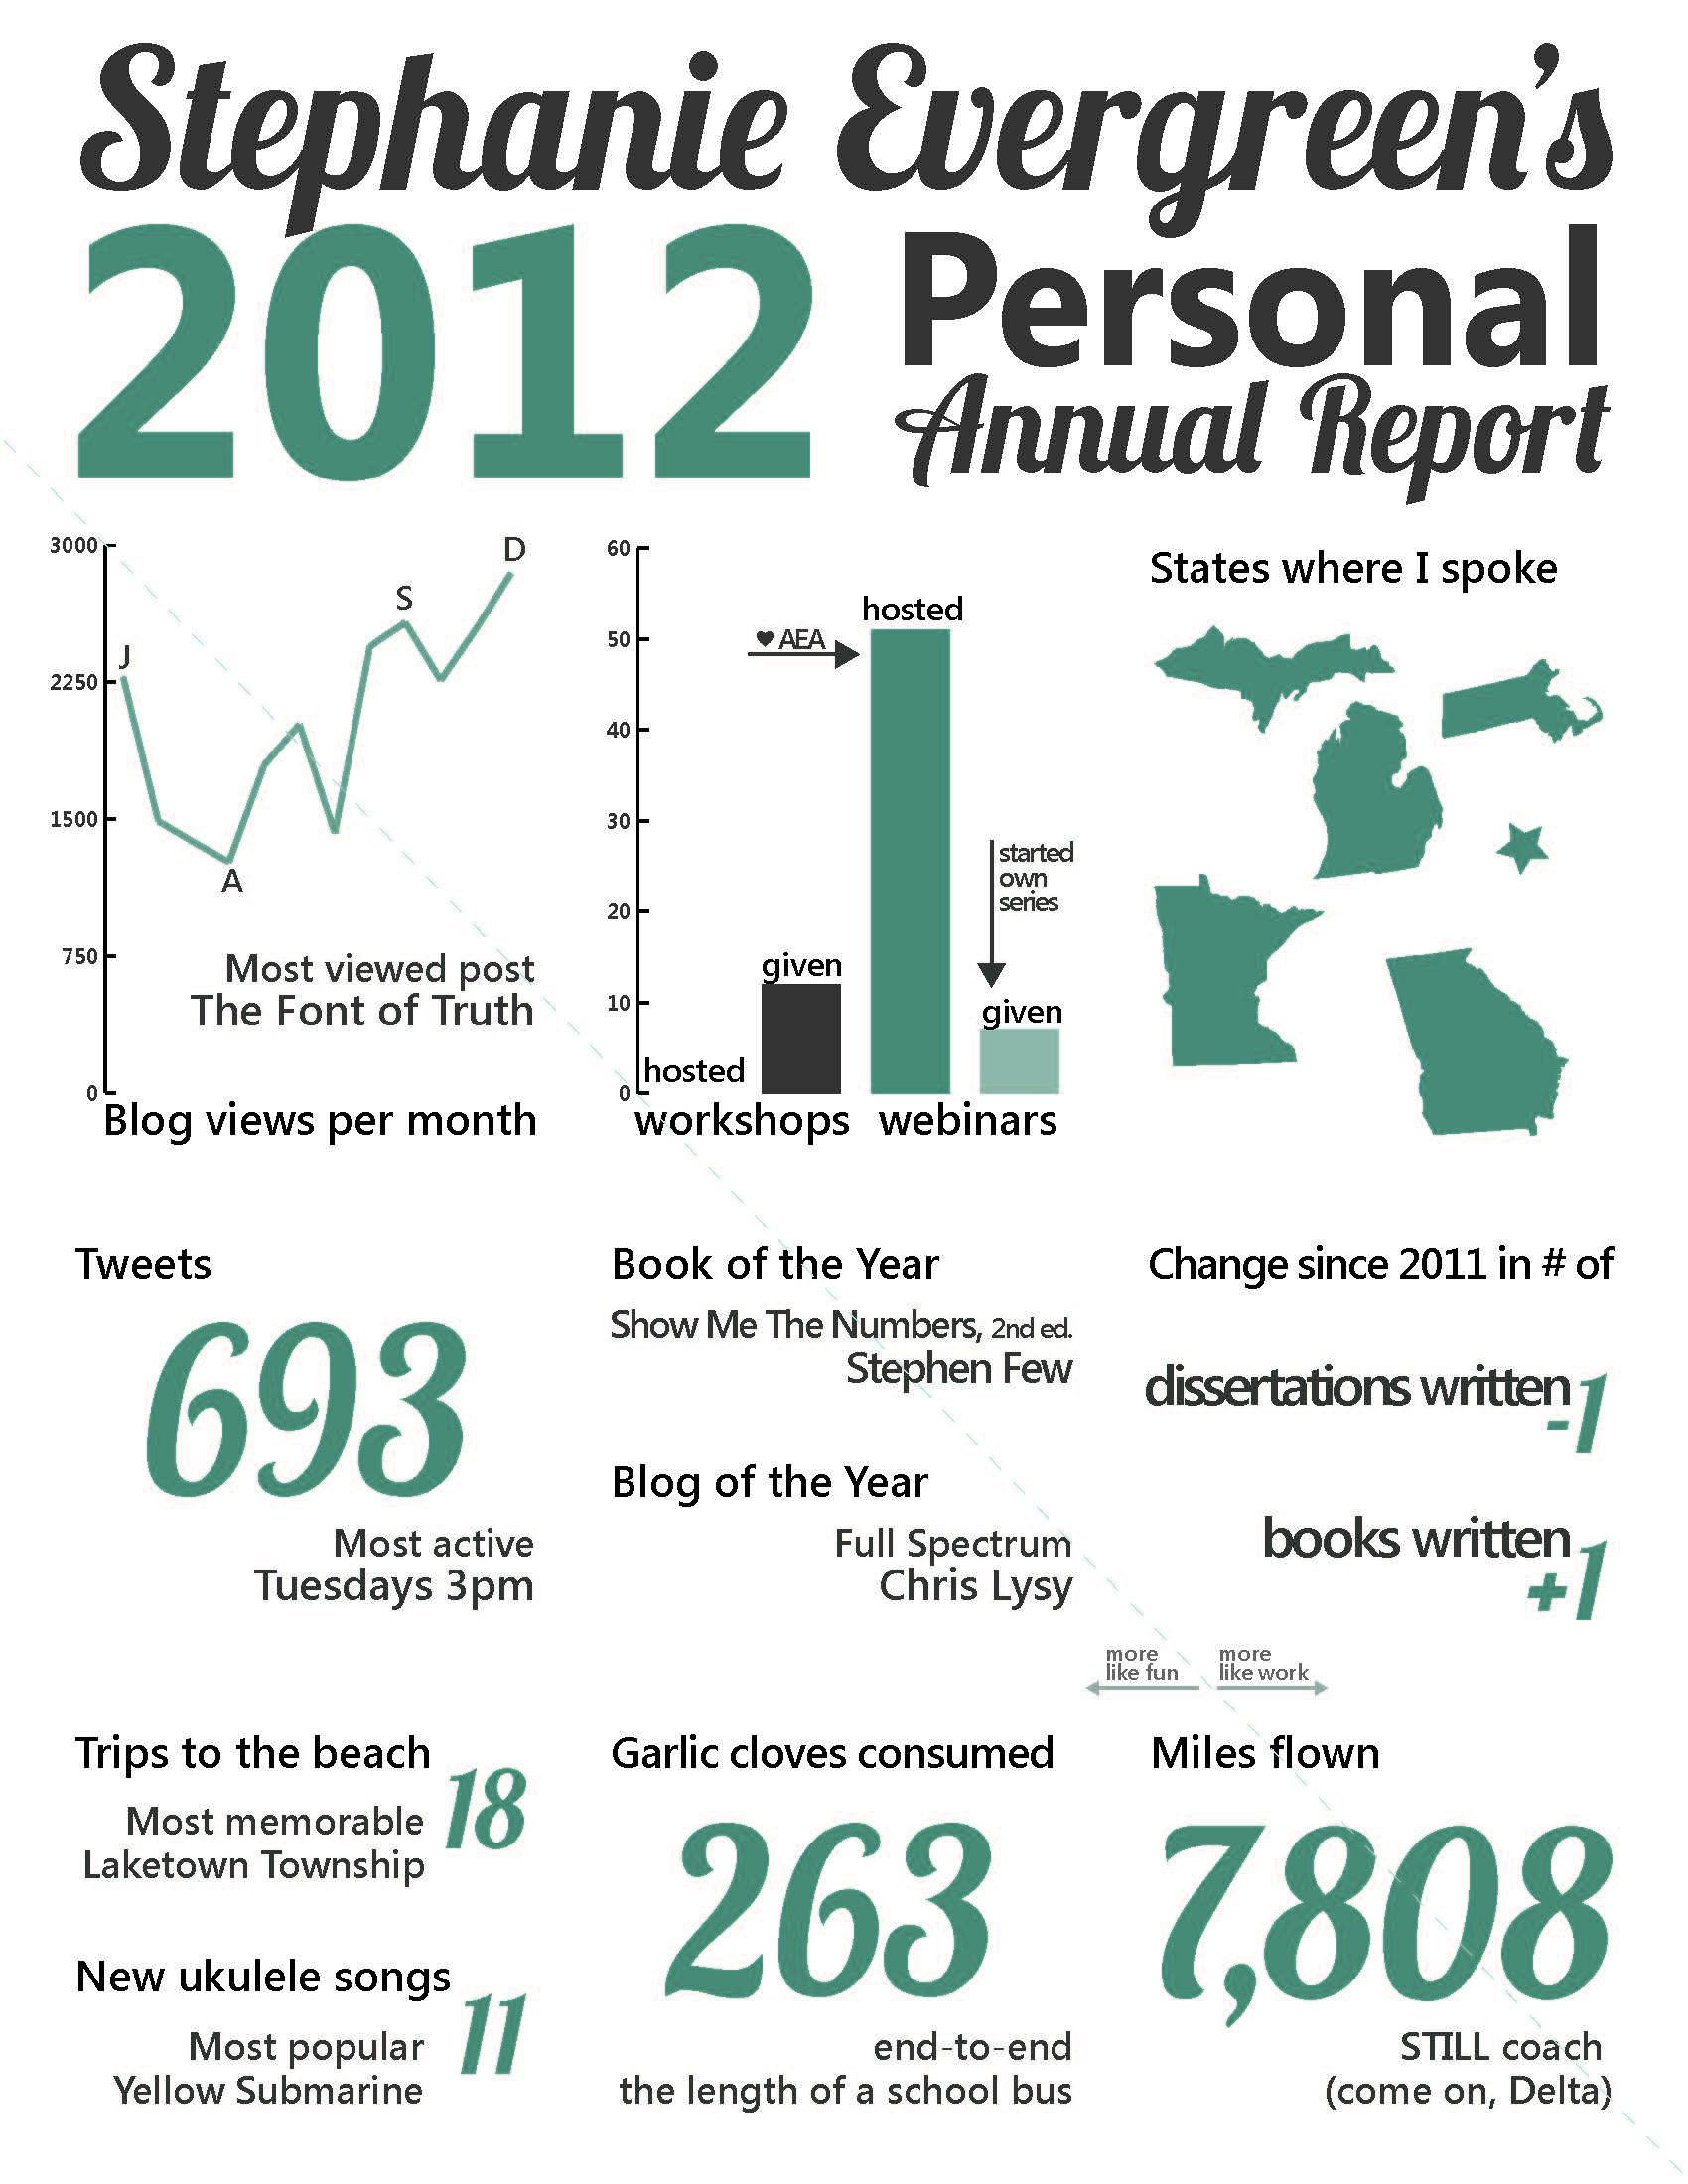 Stephanie Evergreen&#039;s personal annual report for 2012